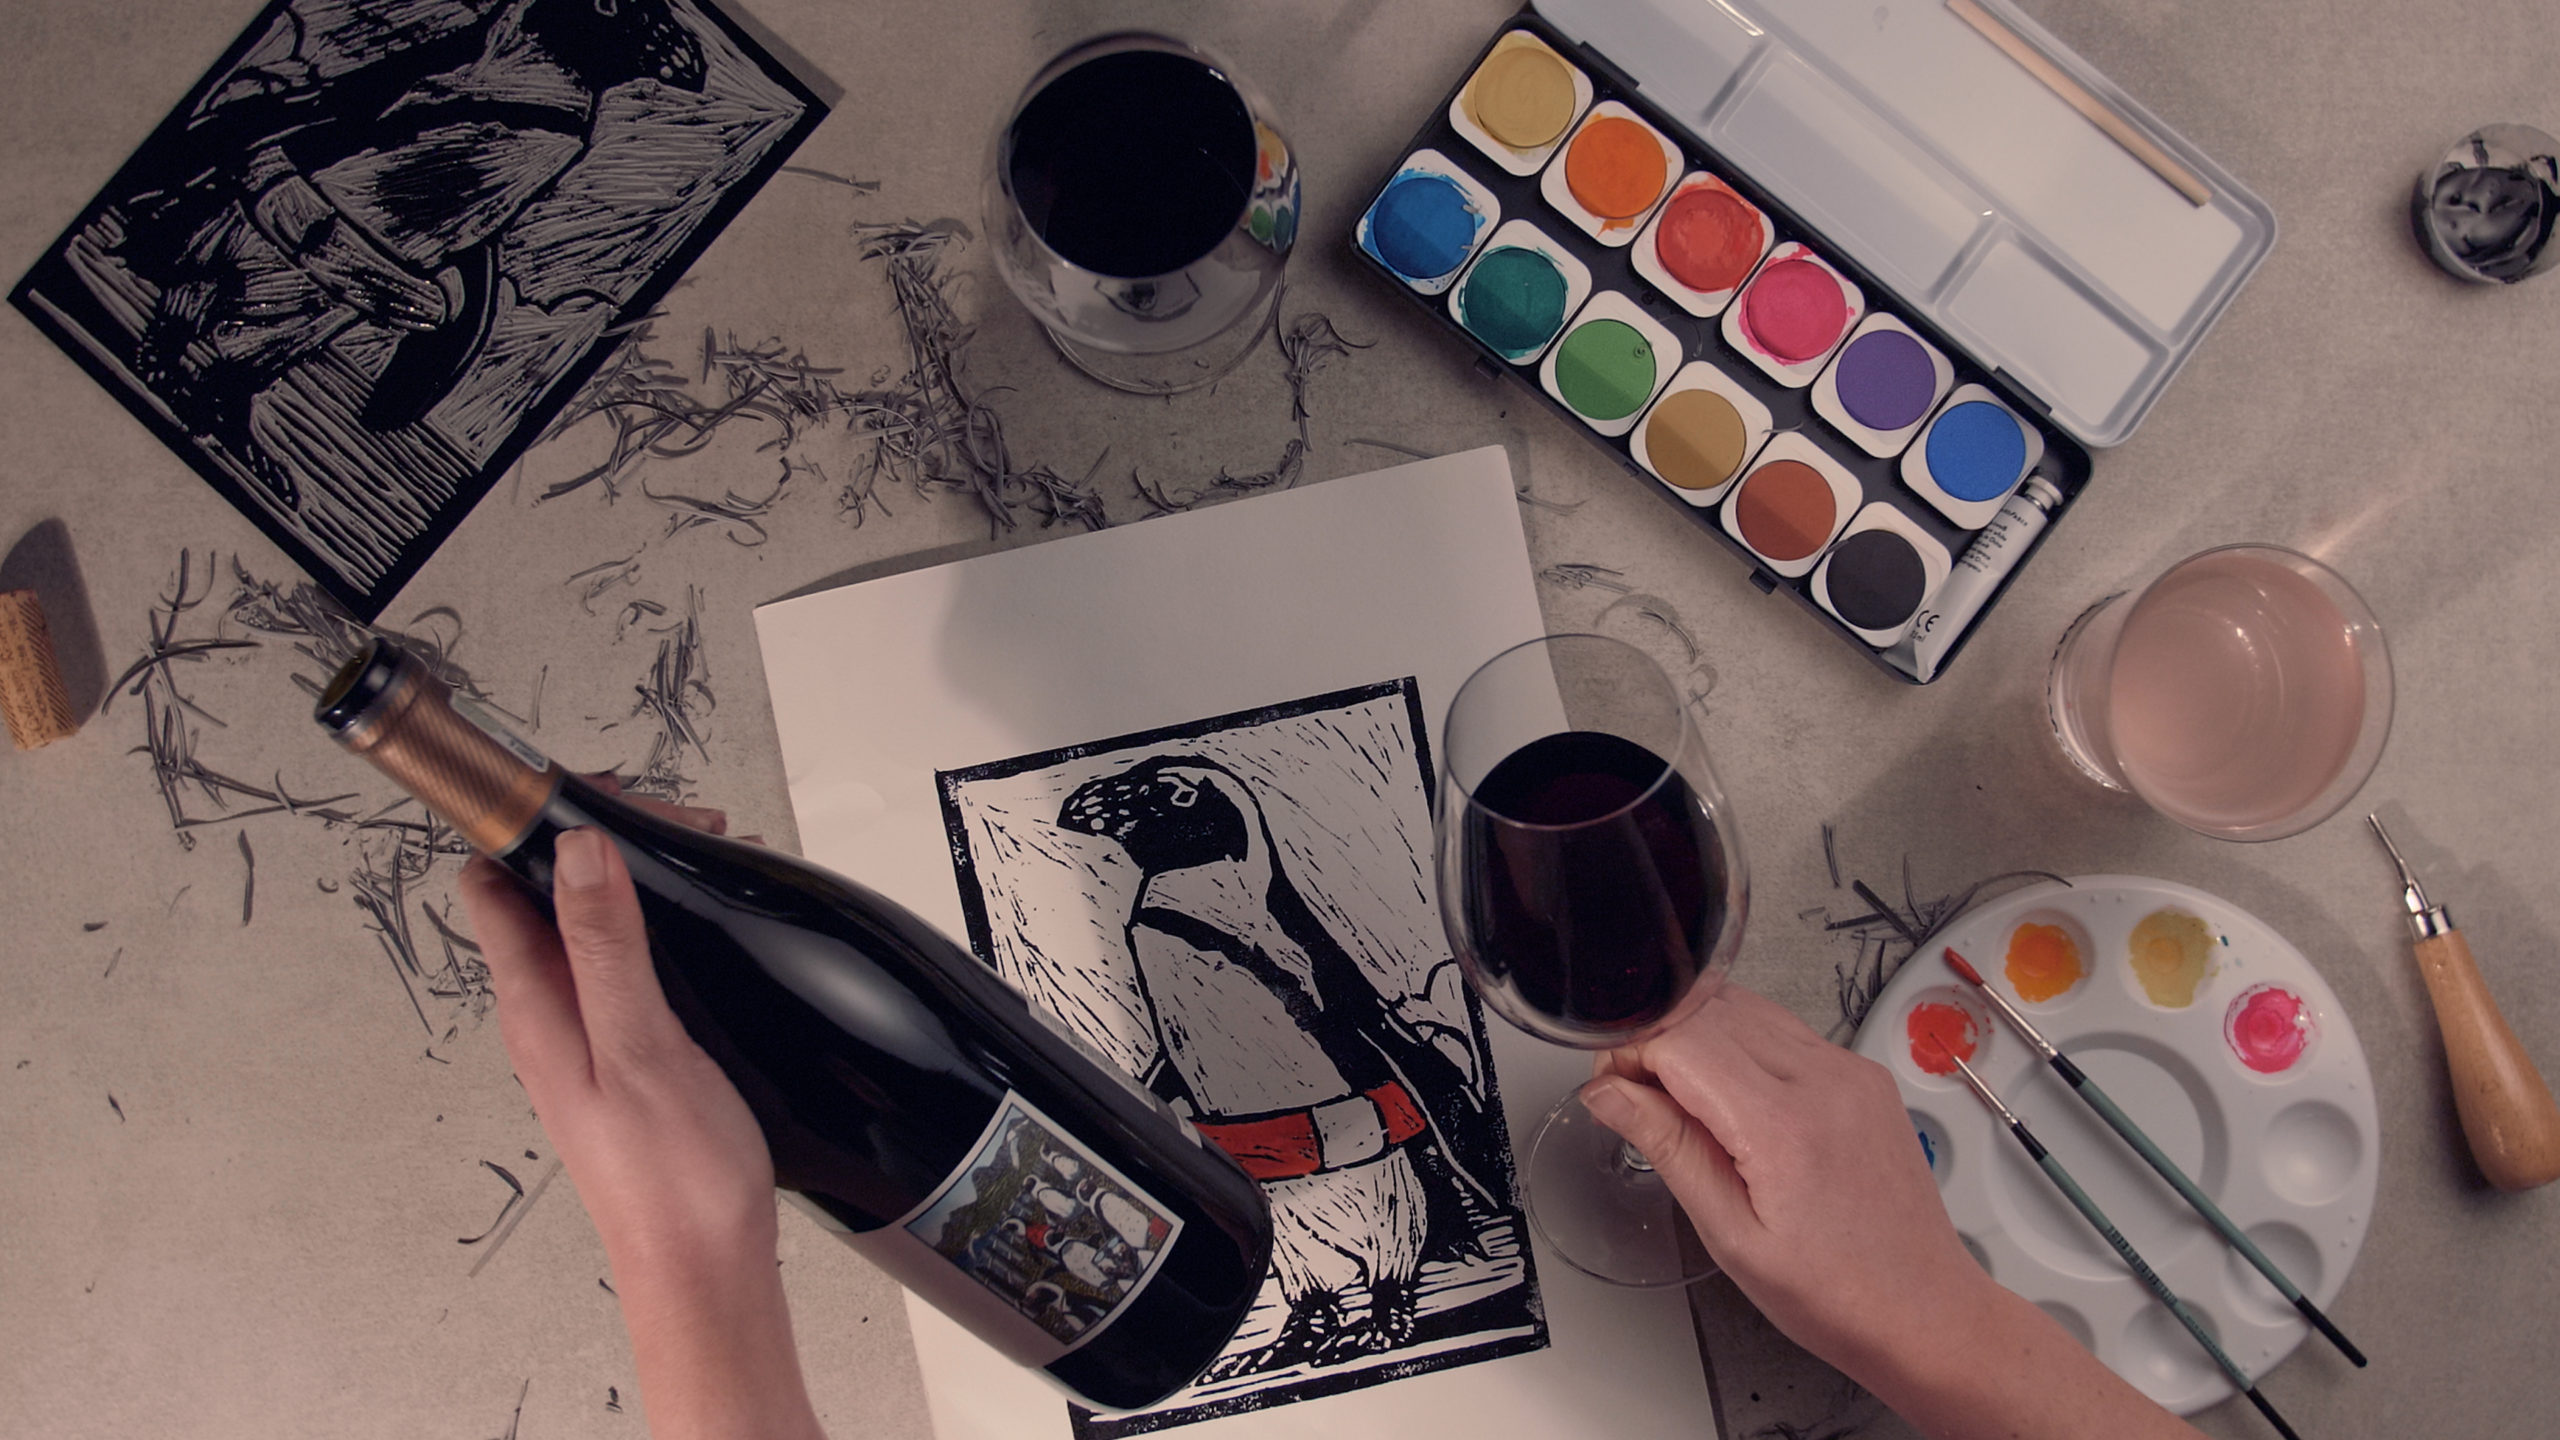 Lino and vino virtual art kit by durbanville hills presented by theo vorster